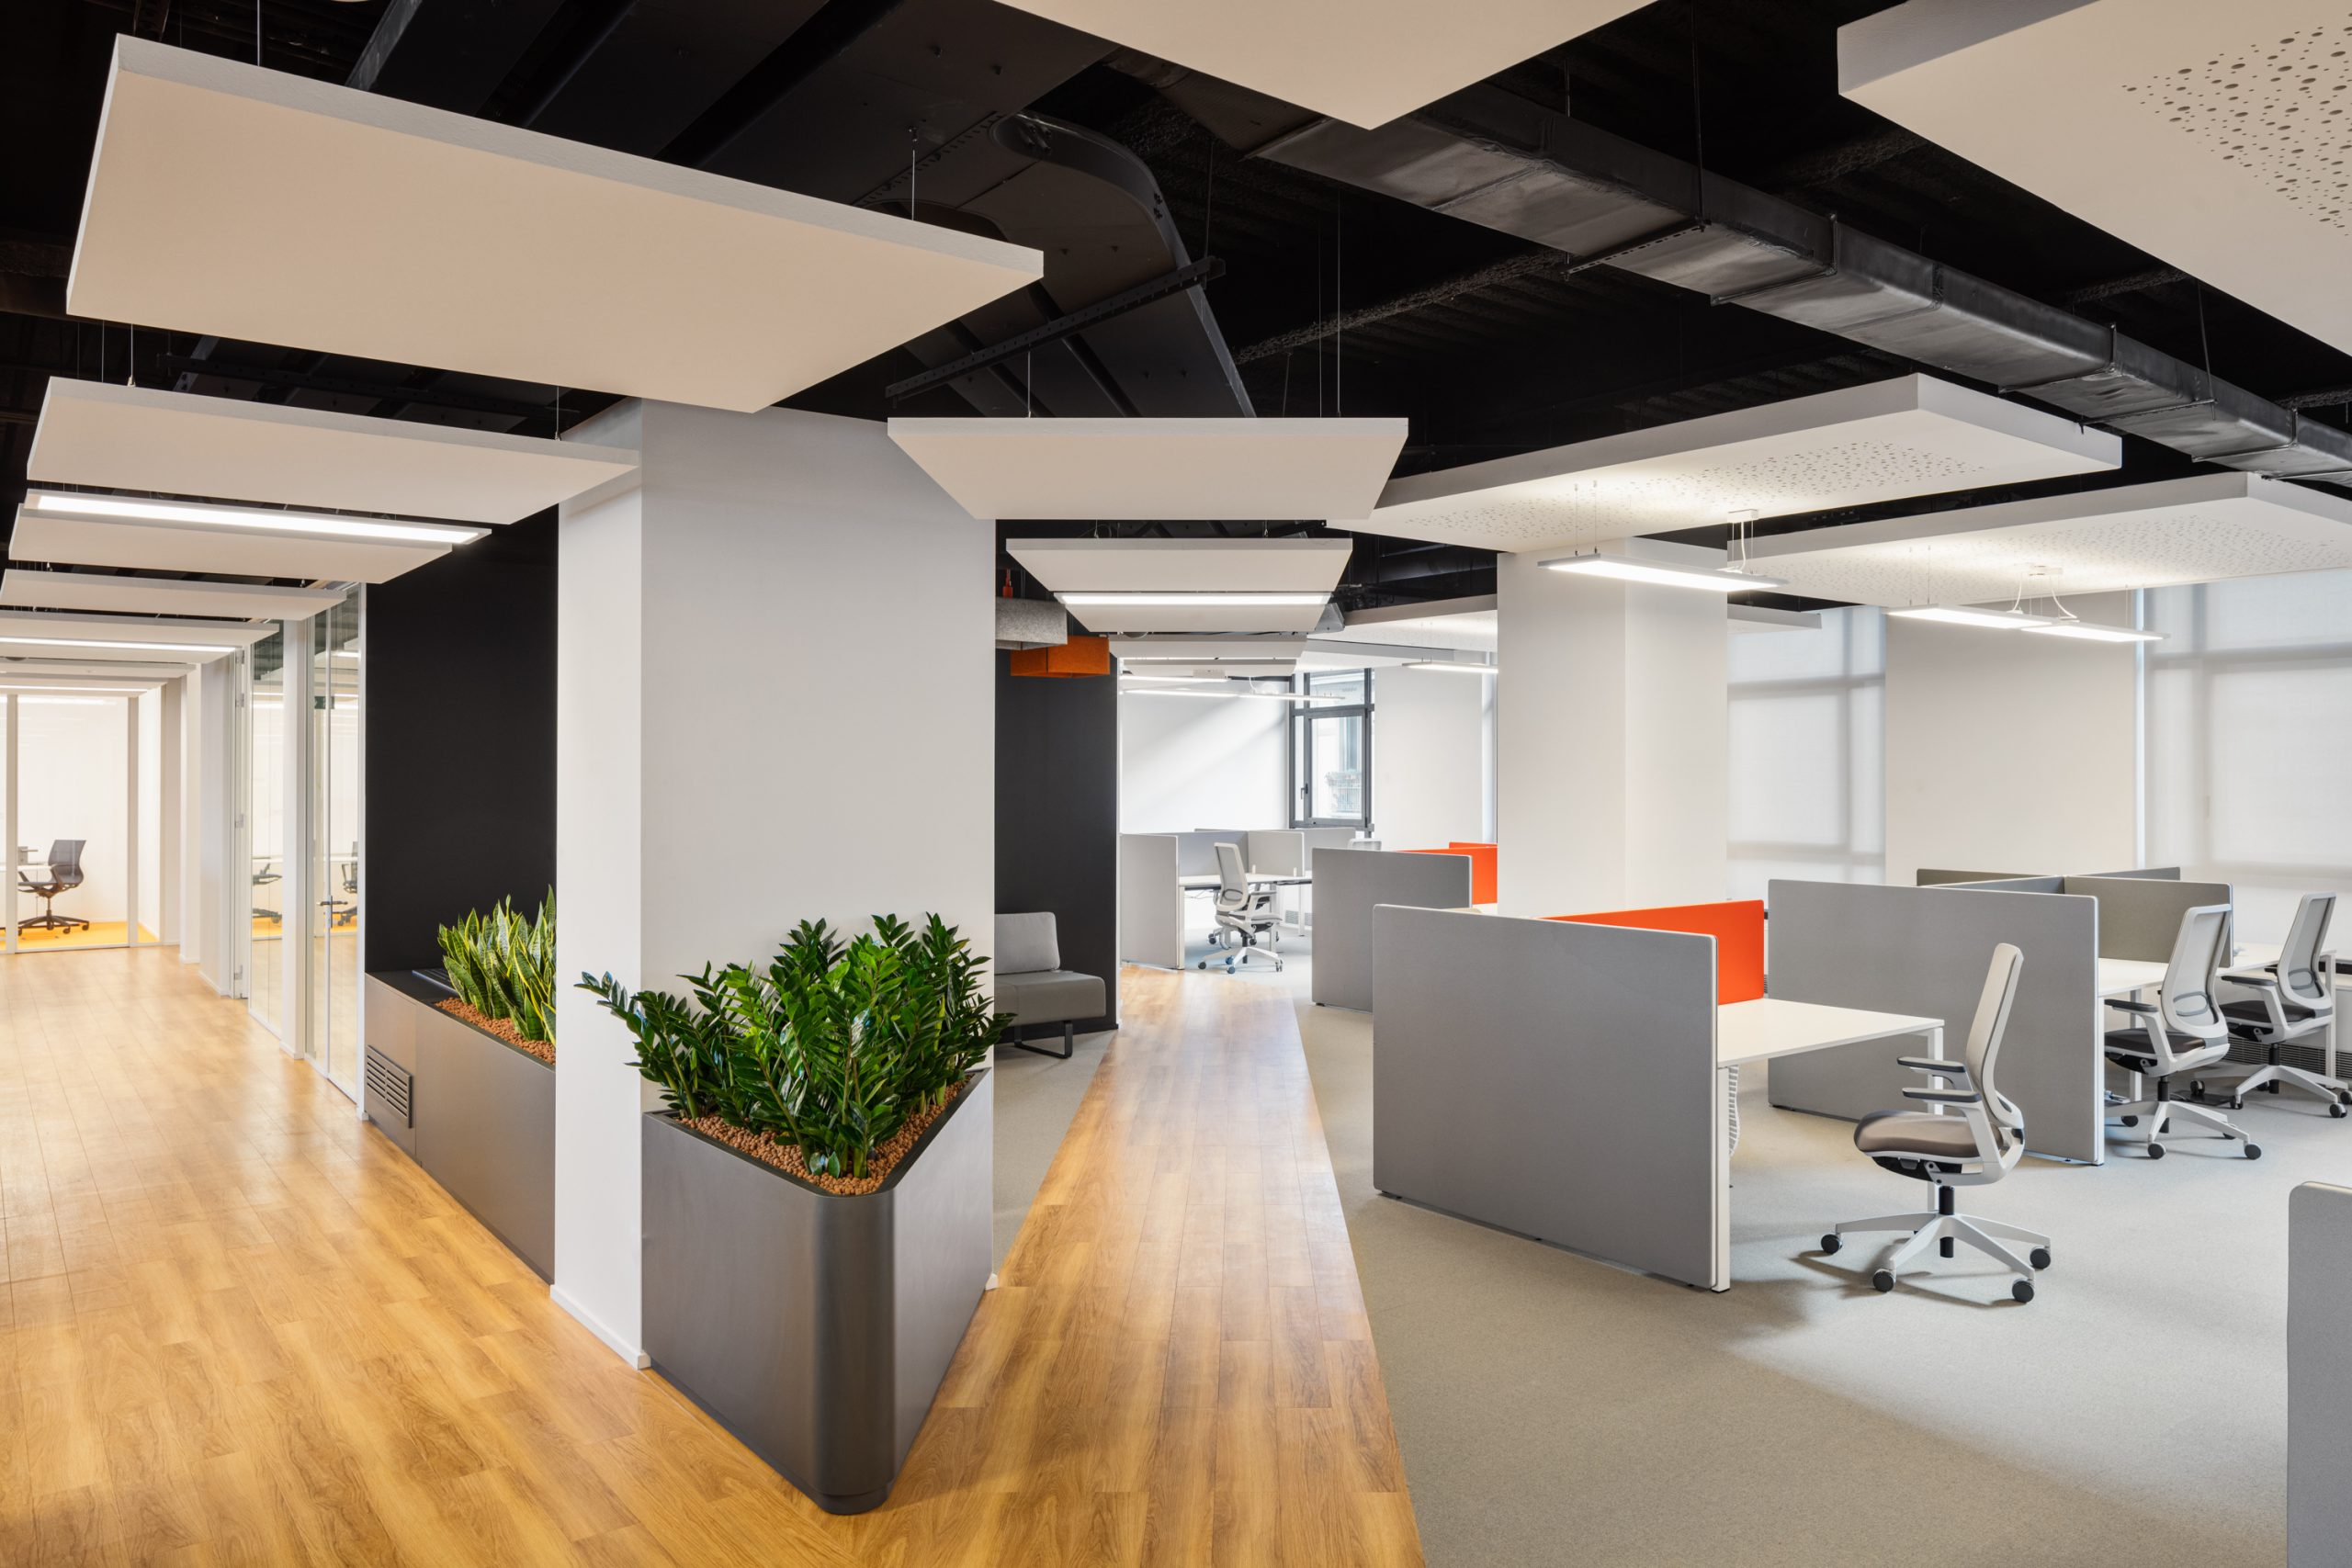 Paying attention to the acoustics of a space can make an environment more comfortable for those sensitive to noise, like the Facile.it offices we built in Milan, Italy.